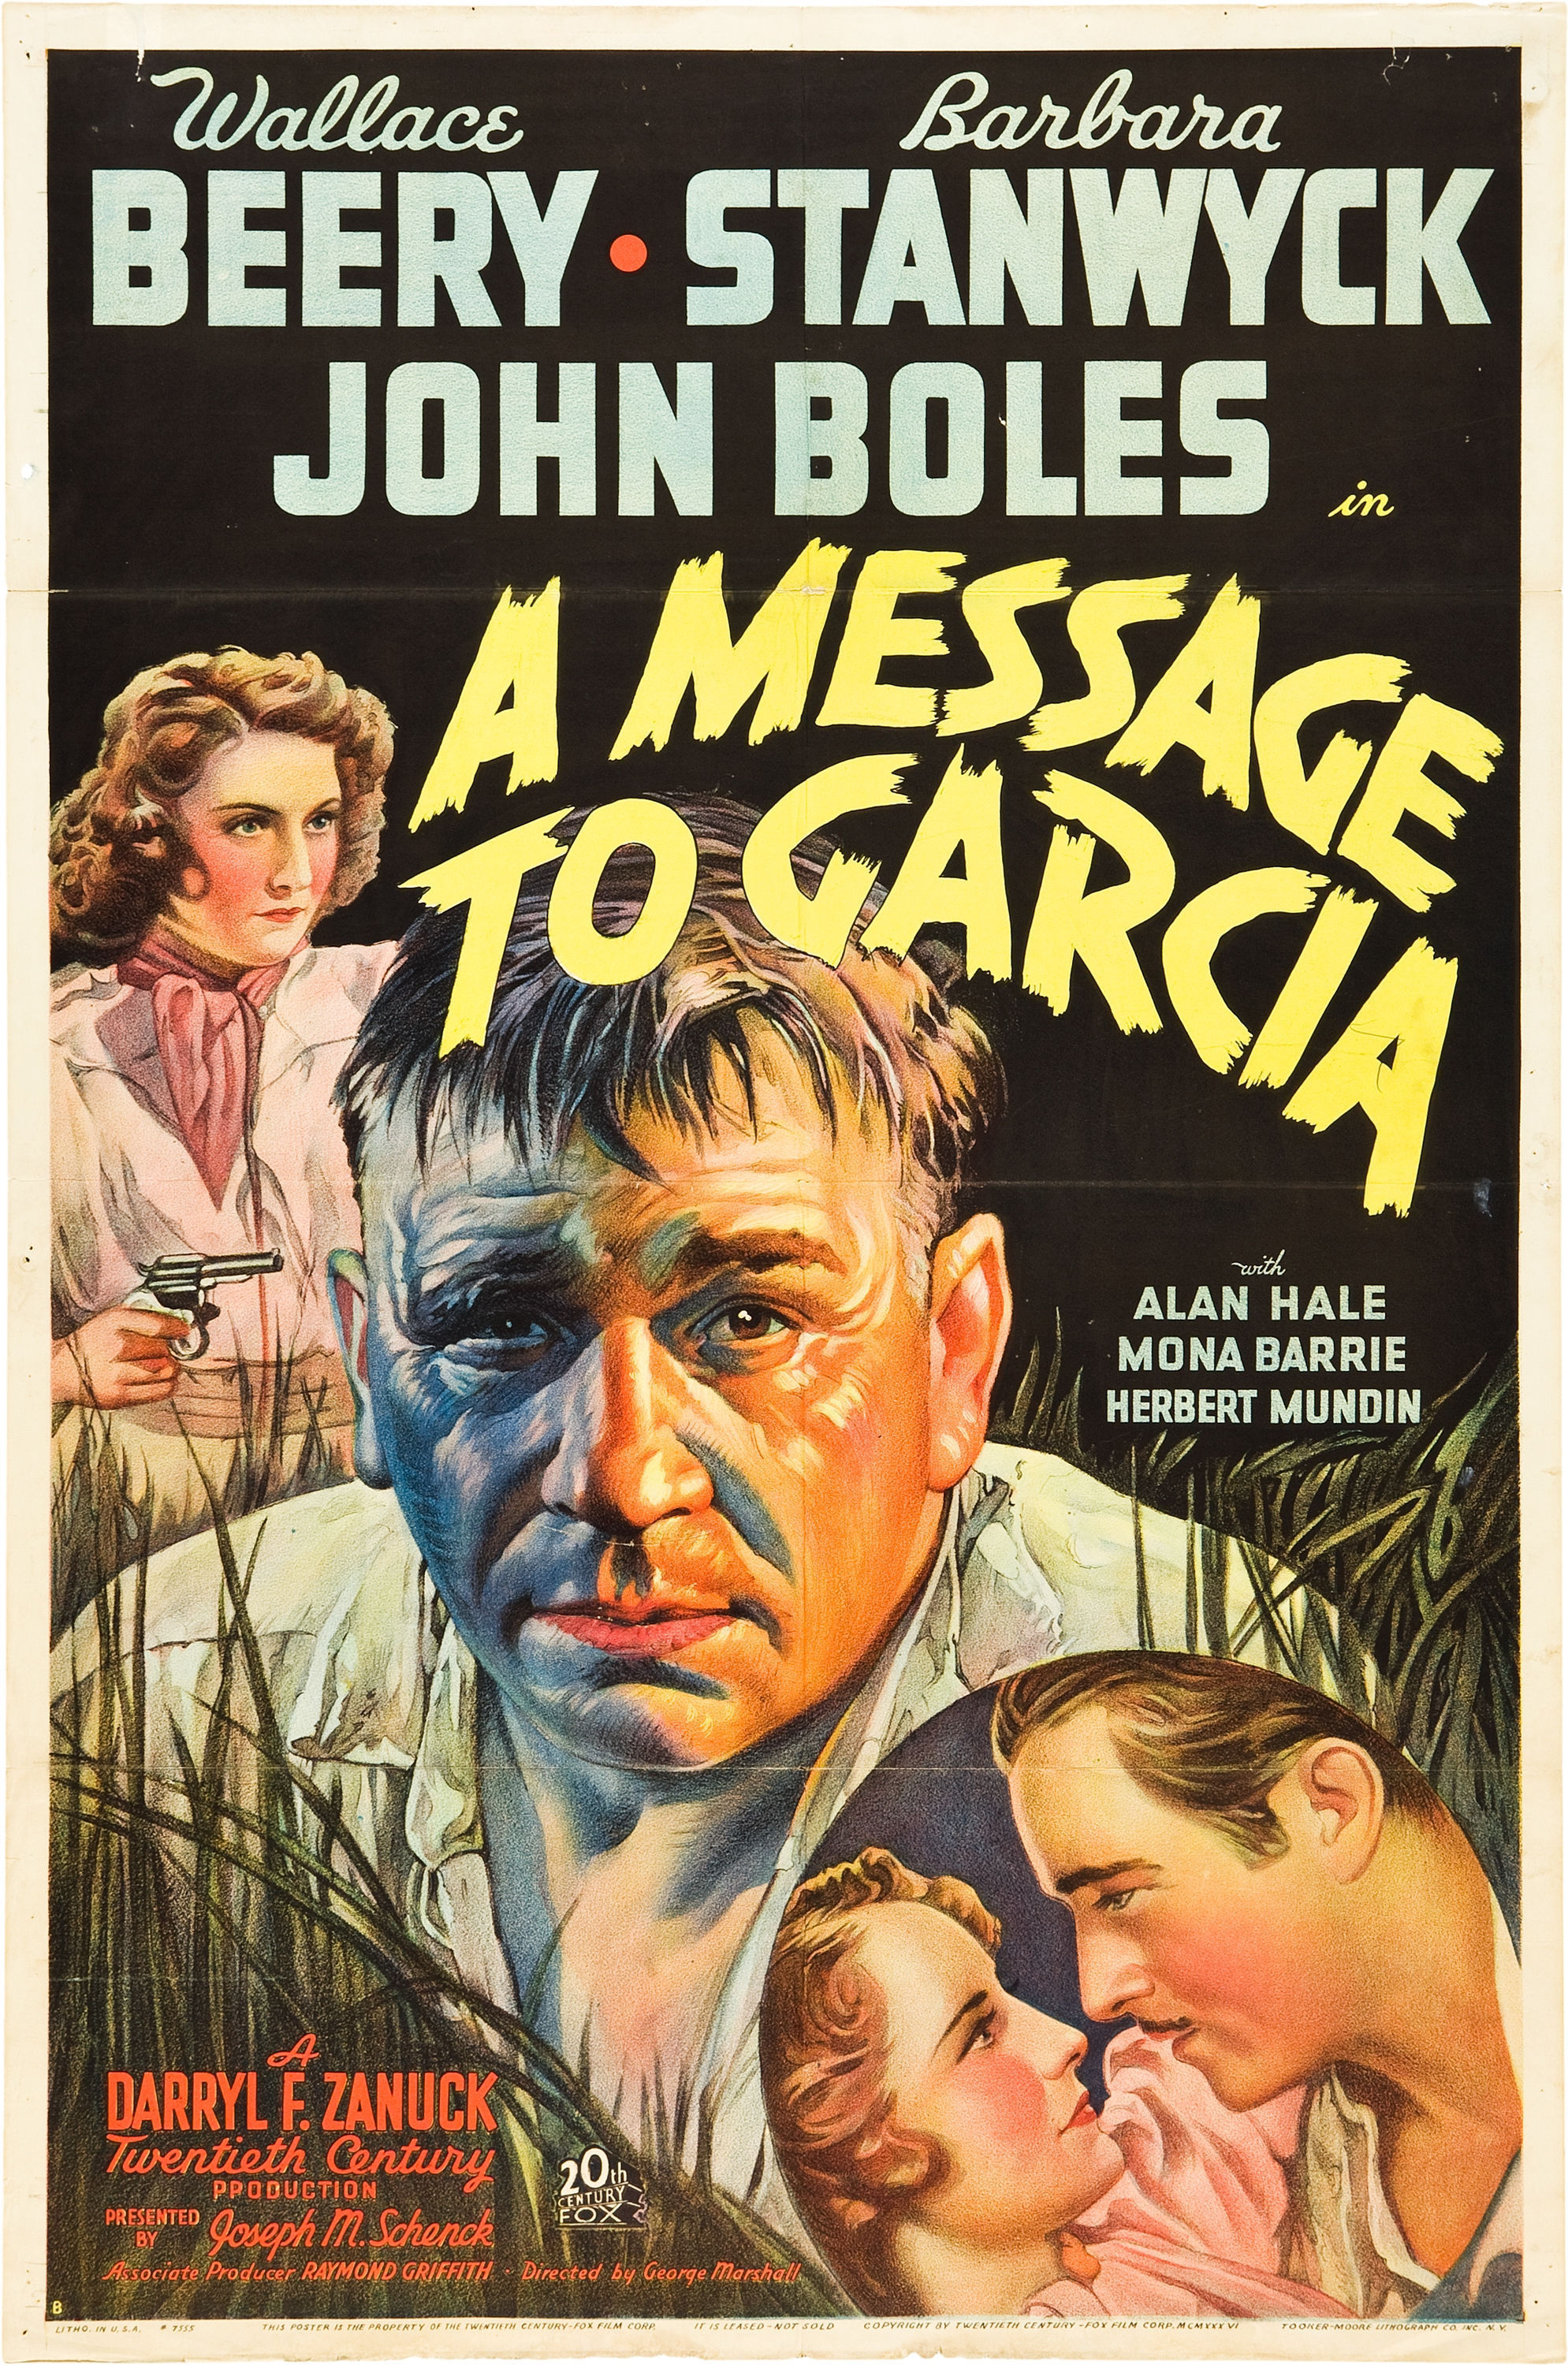 """a message to garcia characteristics """"a message to garcia"""" was at once an appeal to the common man to strive for these rowan-like characteristics and a validation of the businessmen and executives who were working the long hours to get things done while searching to find such people, who were, unfortunately, very scarce."""